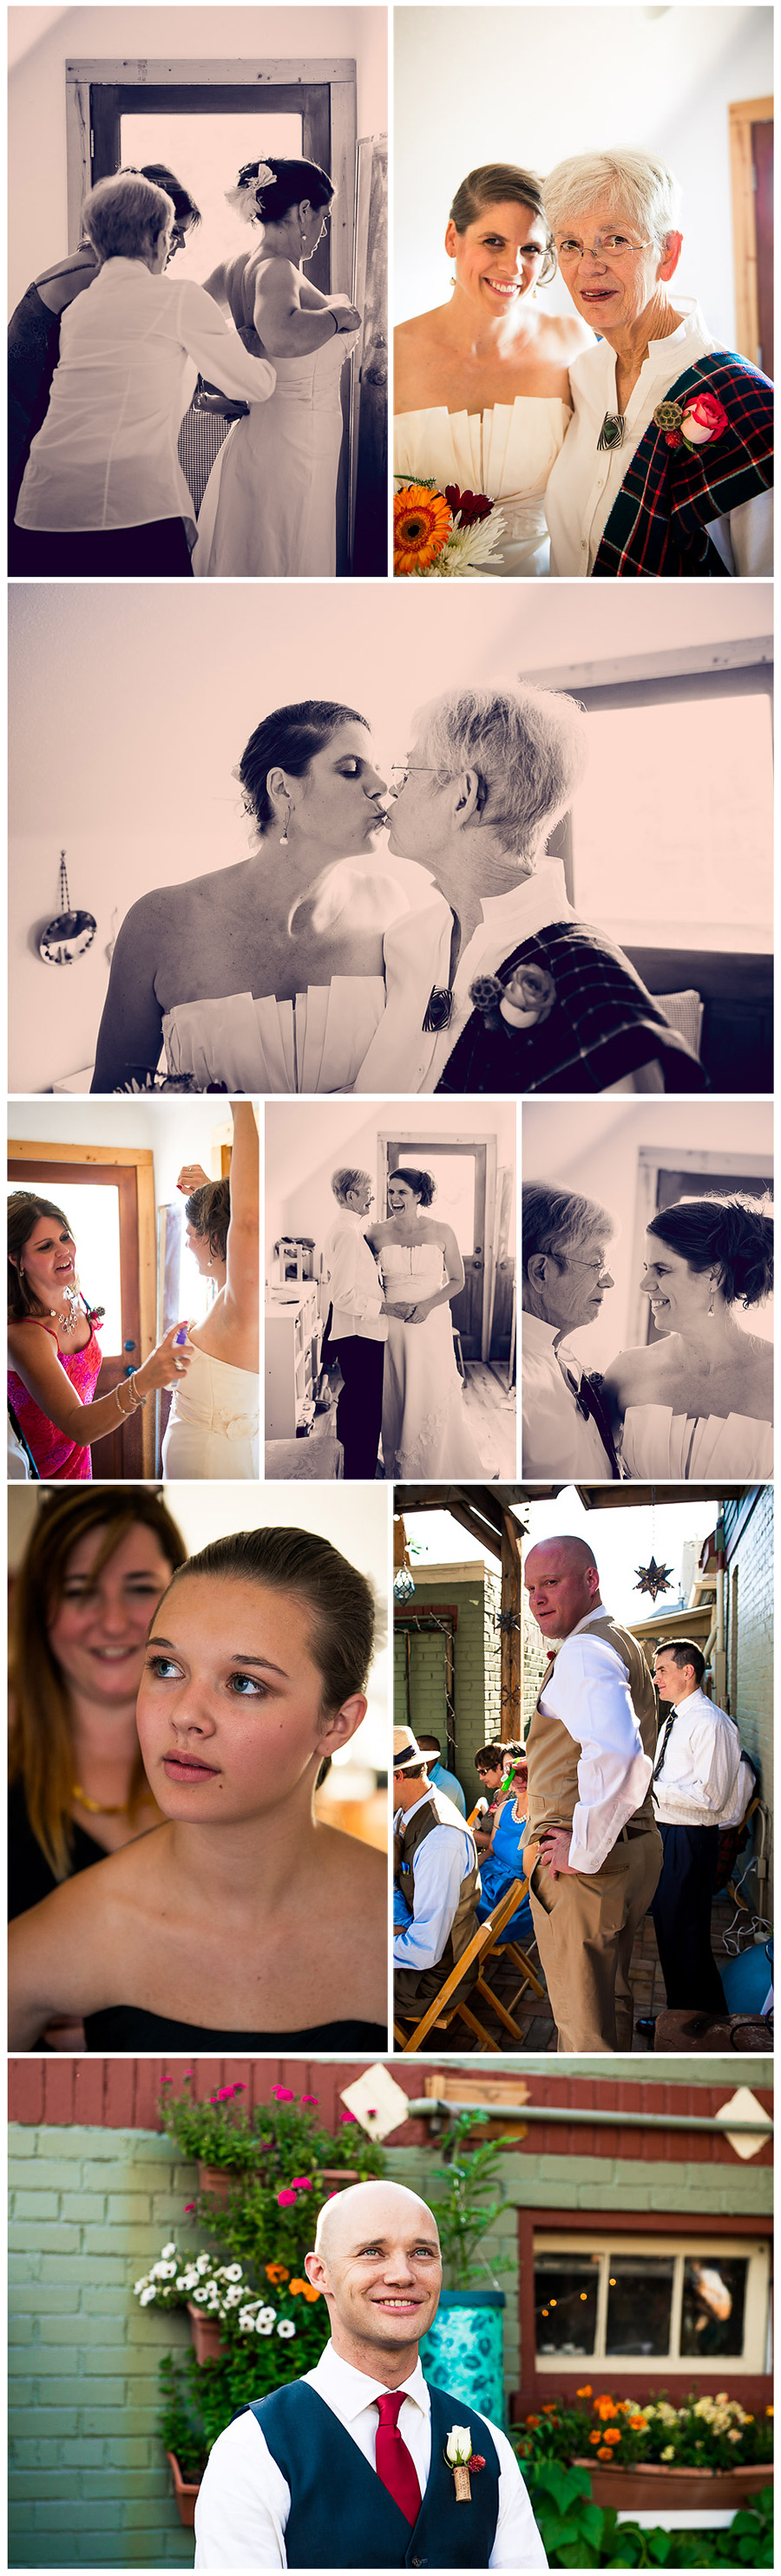 Kate and Ed's Wedding Collage 6